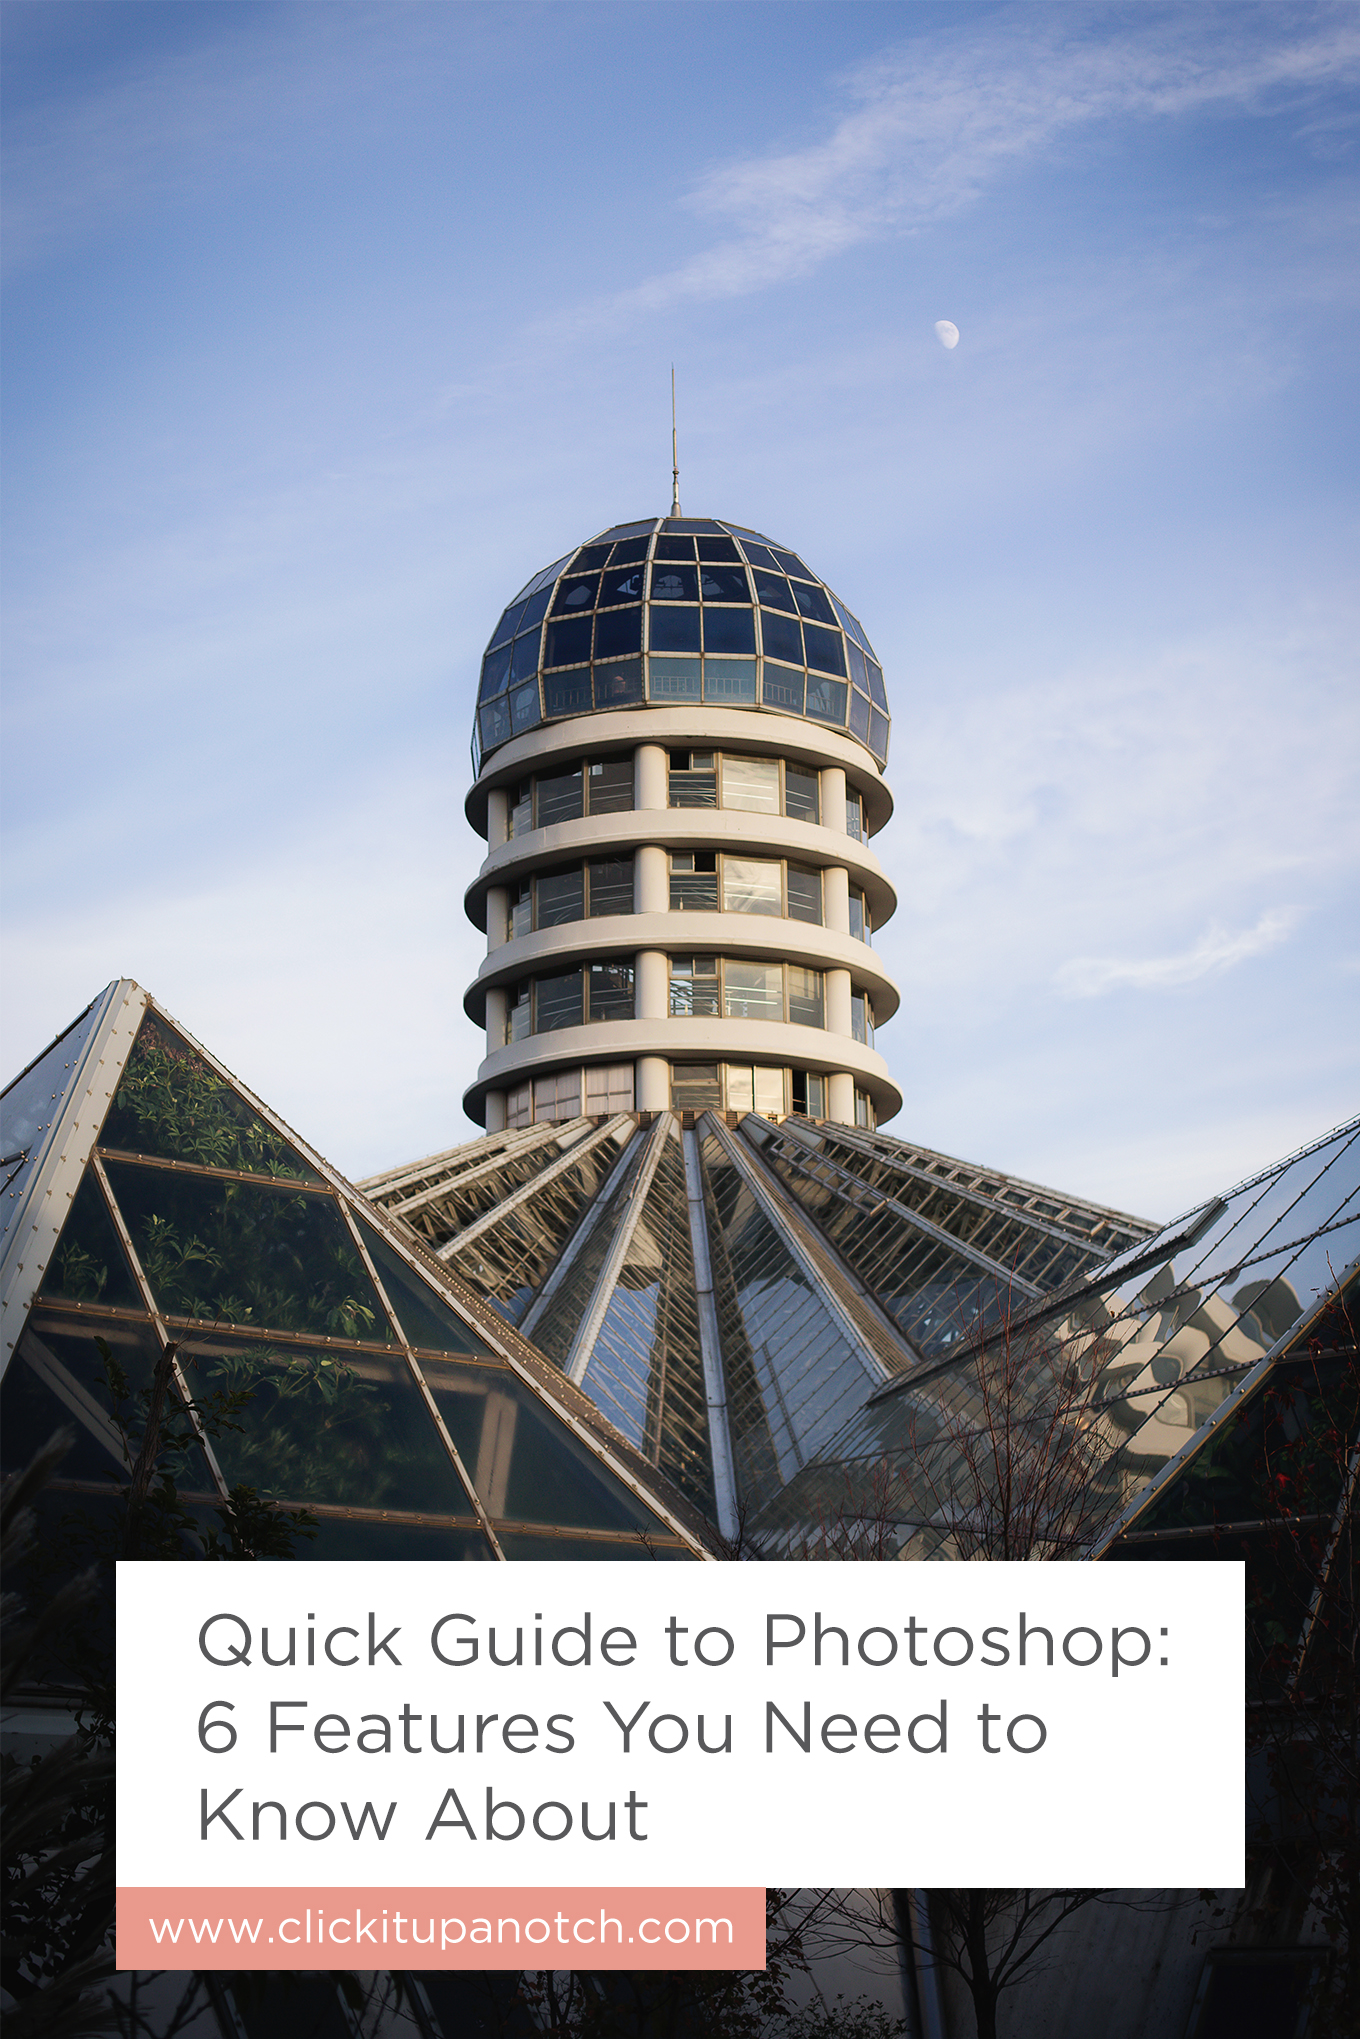 Photoshop 6 Quick Guide To Photoshop 6 Features You Need To Know About